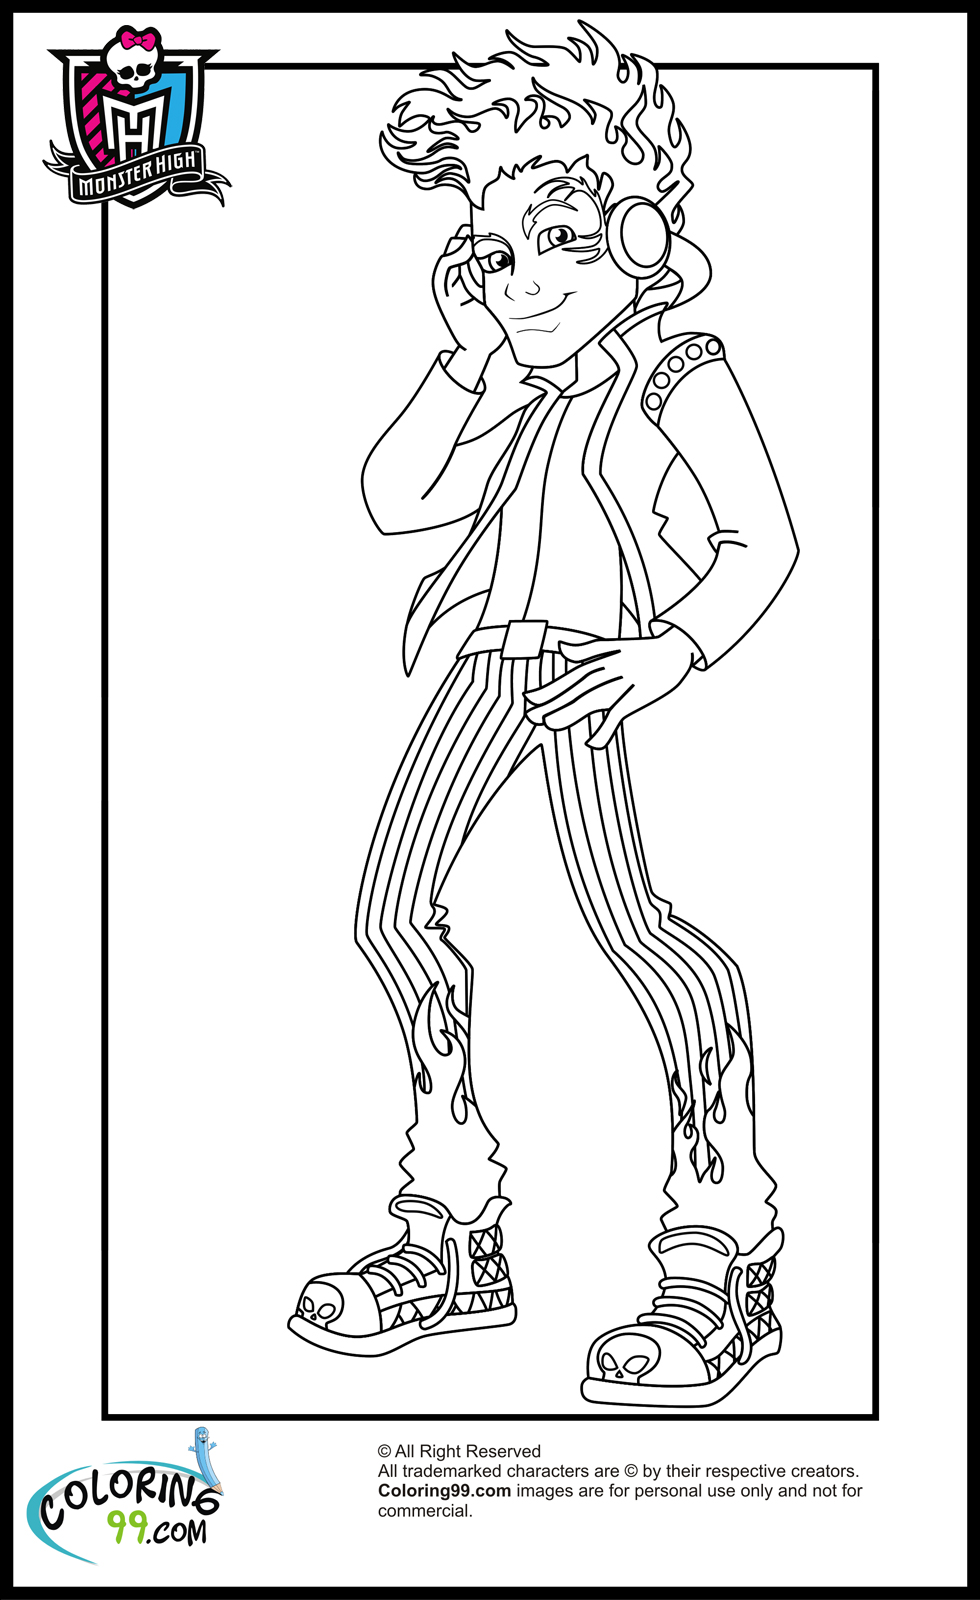 Boys coloring book pages ~ Monster High Boys Coloring Pages | Minister Coloring